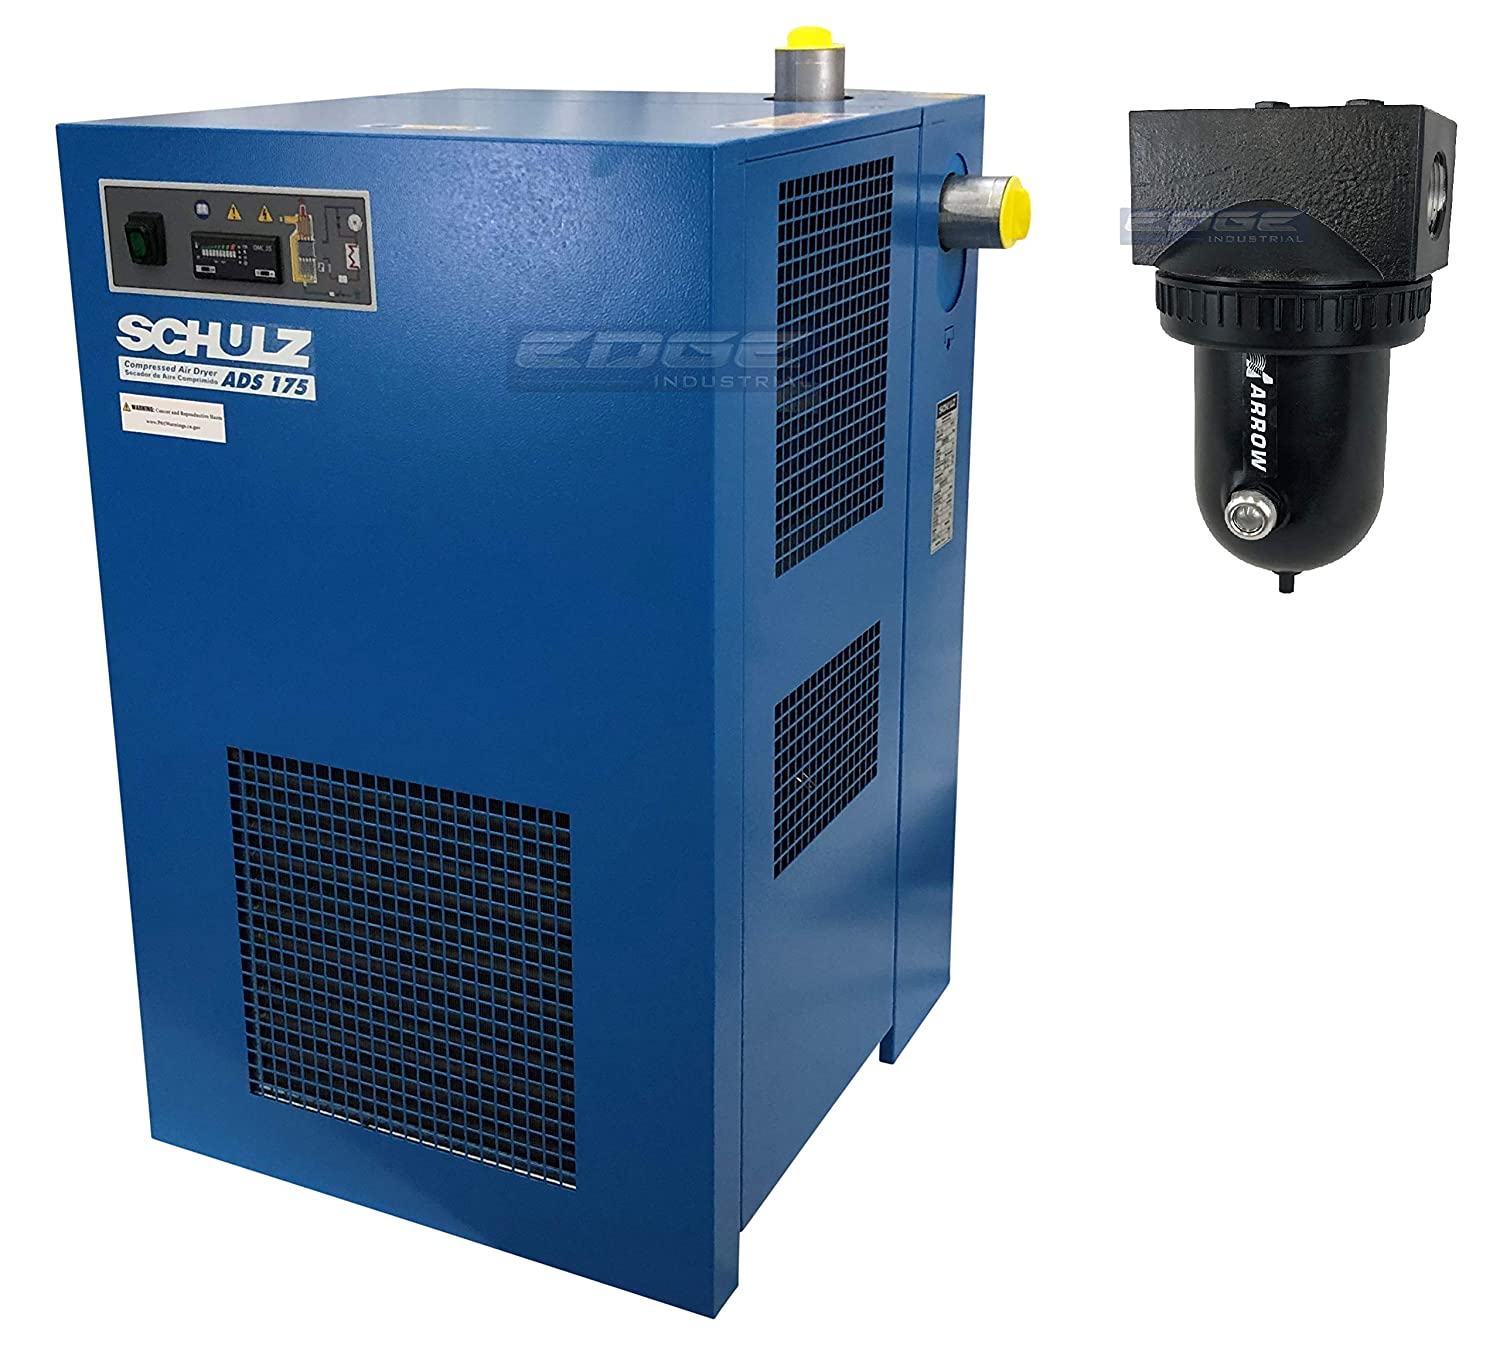 100 CFM Good for 20HP /& 25HP COMPRESSORS Schulz REFRIGERATED AIR Dryer for AIR Compressor Stand Alone Dryer Compressed AIR Systems